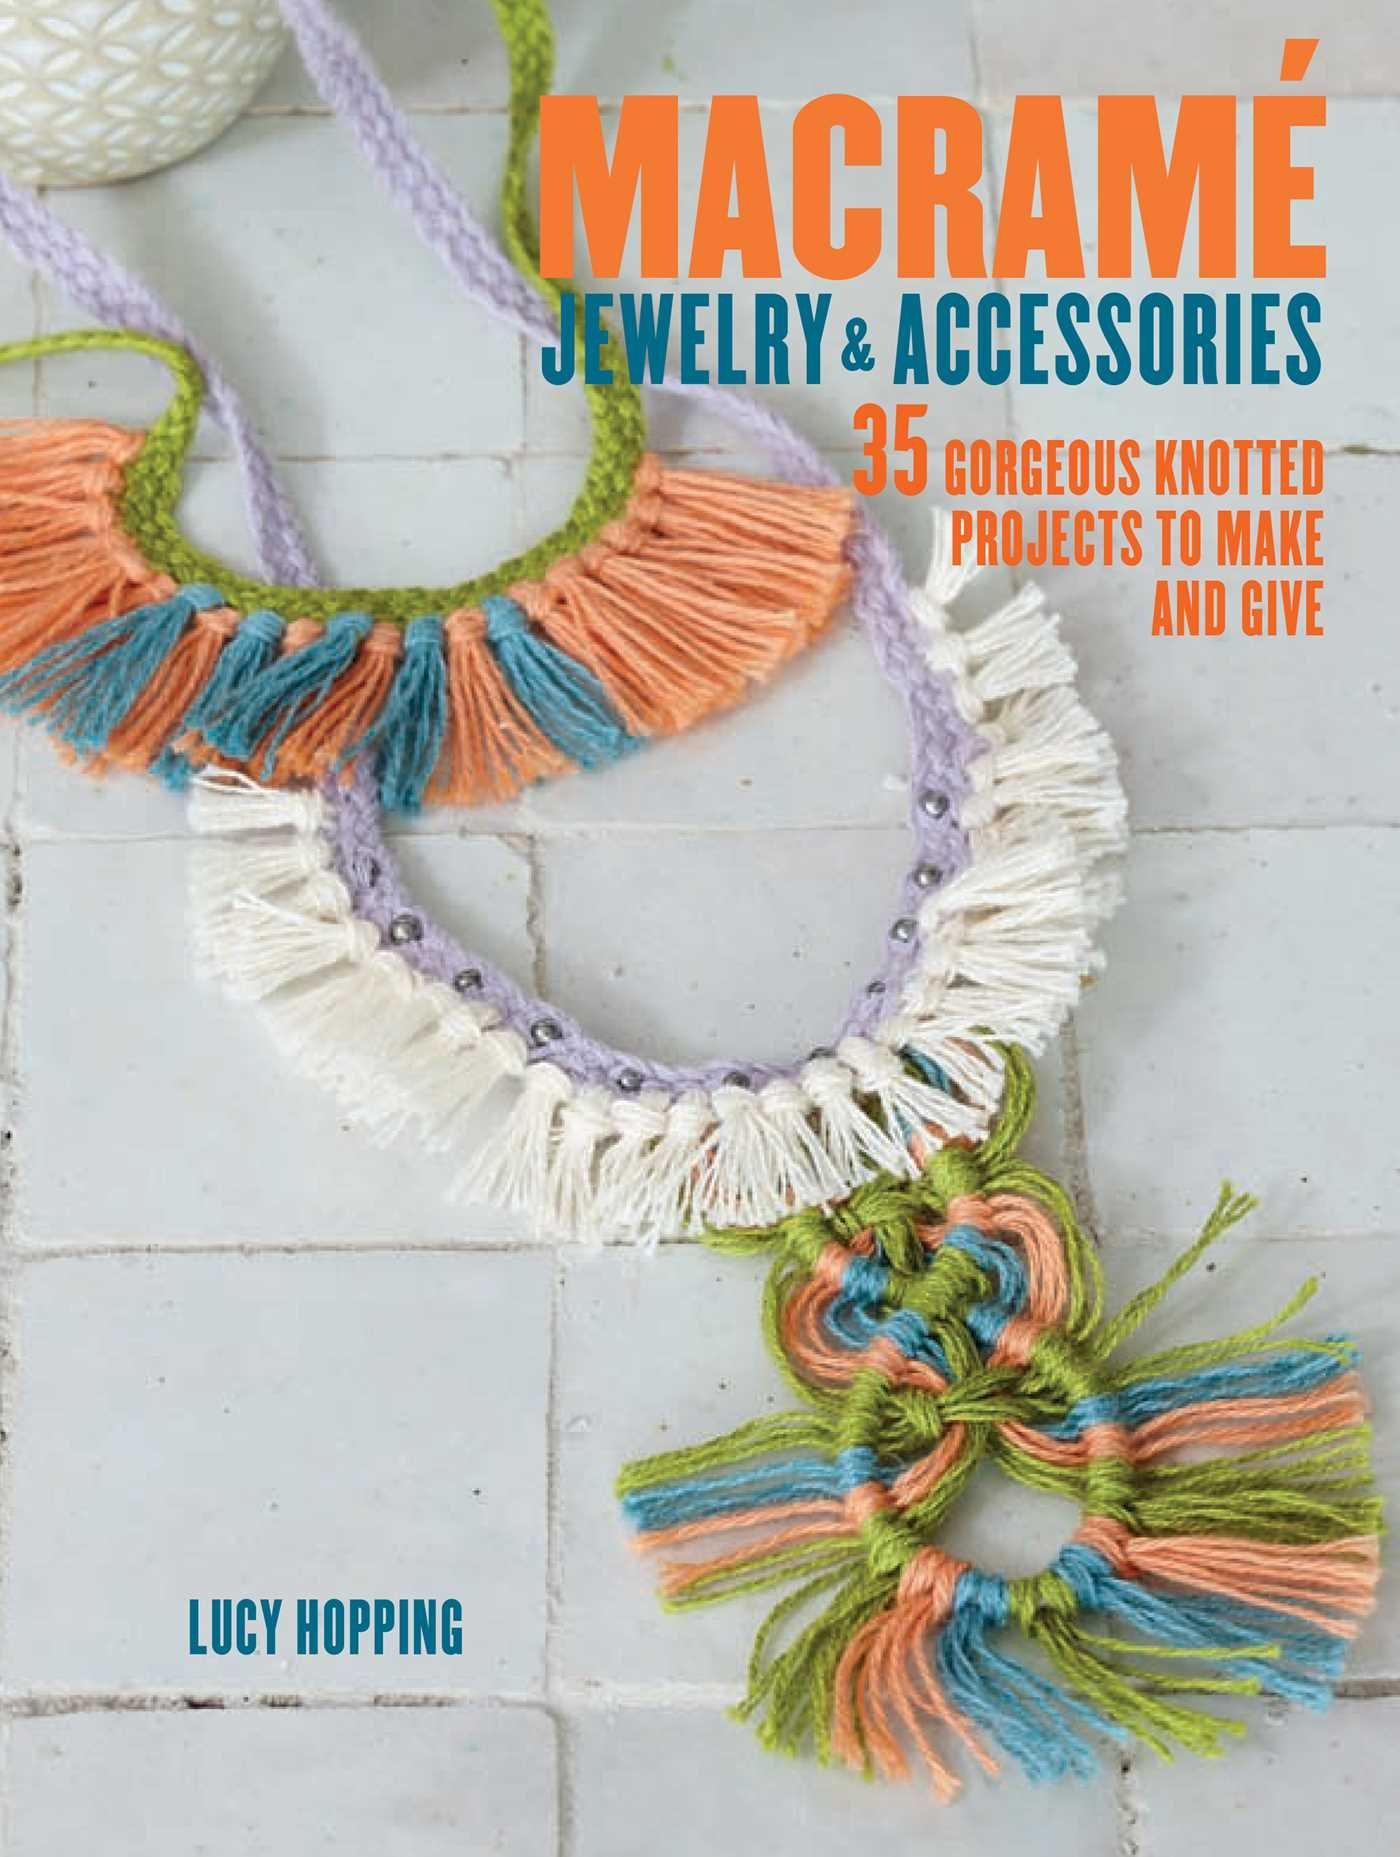 Macrame Jewelry and Accessories: 35 striking projects to make and give